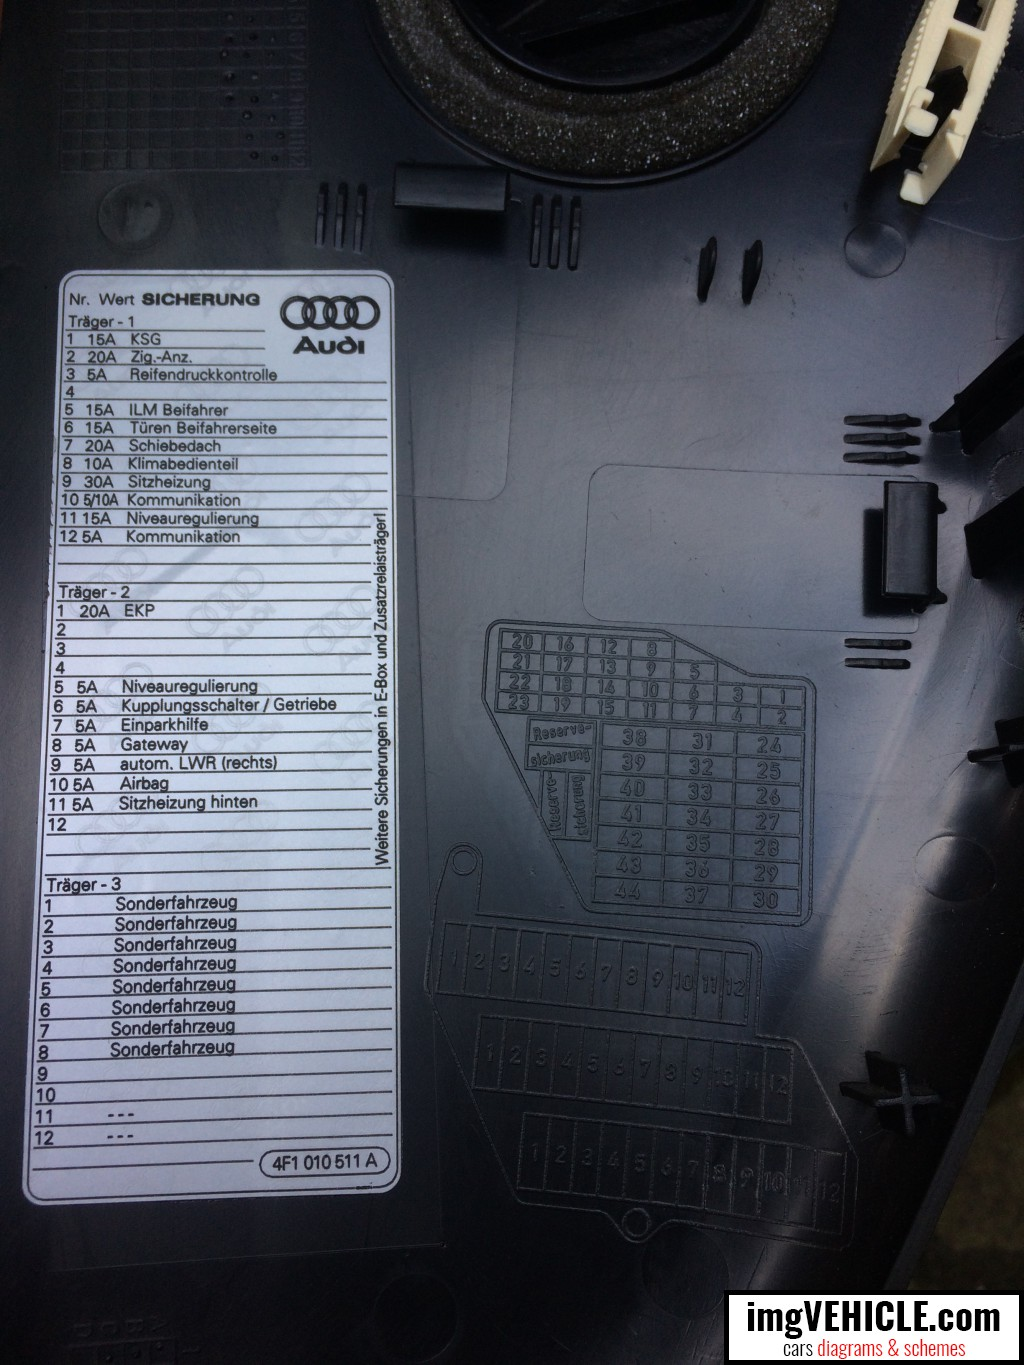 audi a6 c6 fuse box diagrams schemes imgvehicle com rh imgvehicle com 1997 audi a4 fuse panel diagram 1999 audi a4 fuse panel diagram